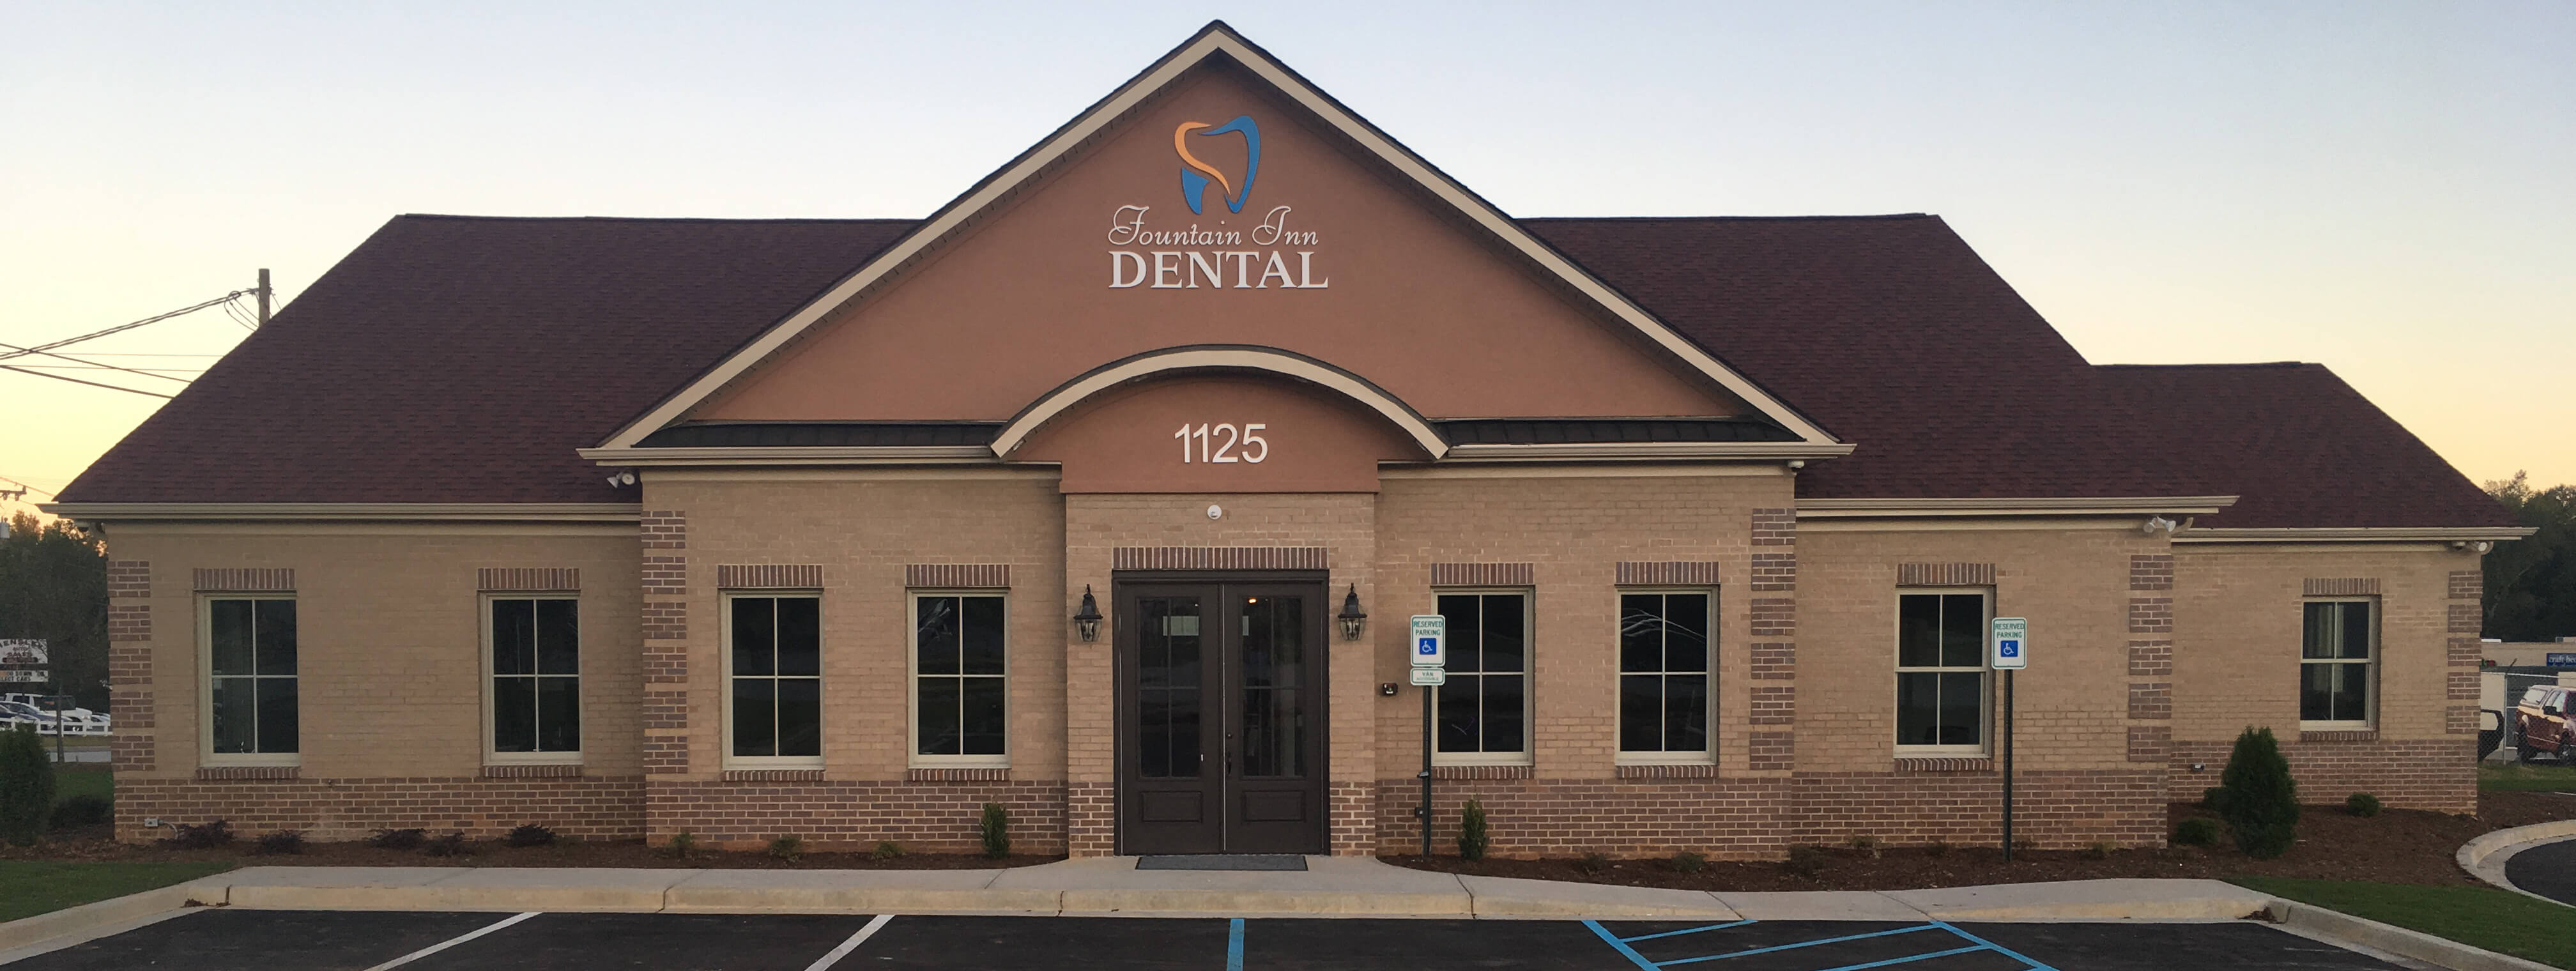 Fountain Inn Dental Office | Fountain Inn, SC 29644 | Cosmetic Dentistry | Sedation Dentistry